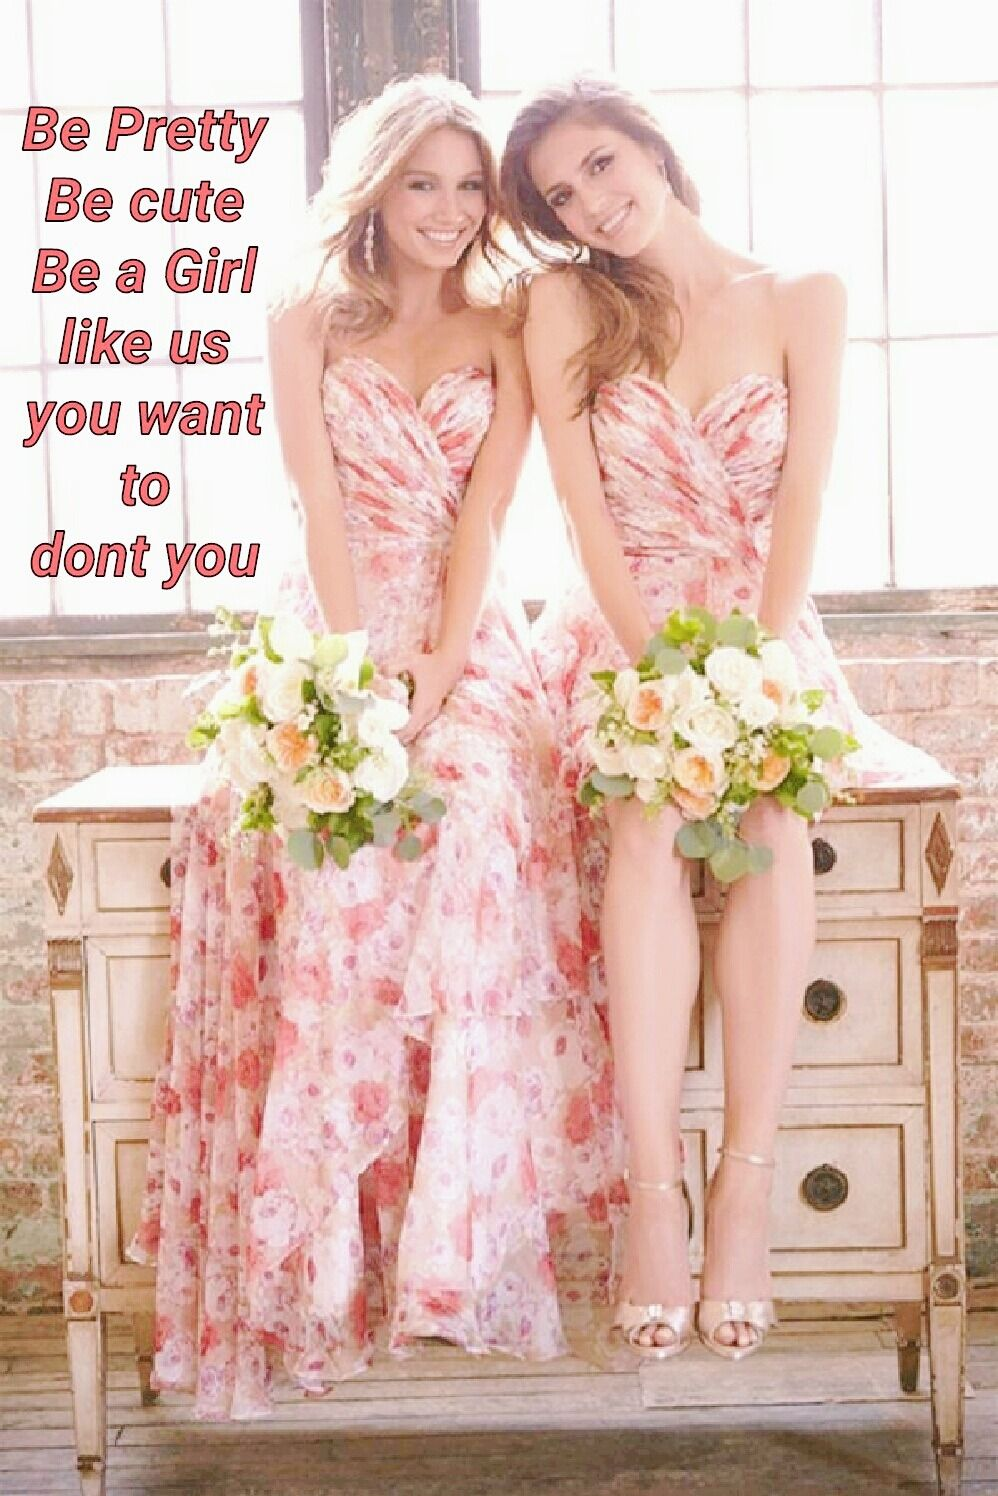 LouiseLonging | Girly sissy wish | Pinterest